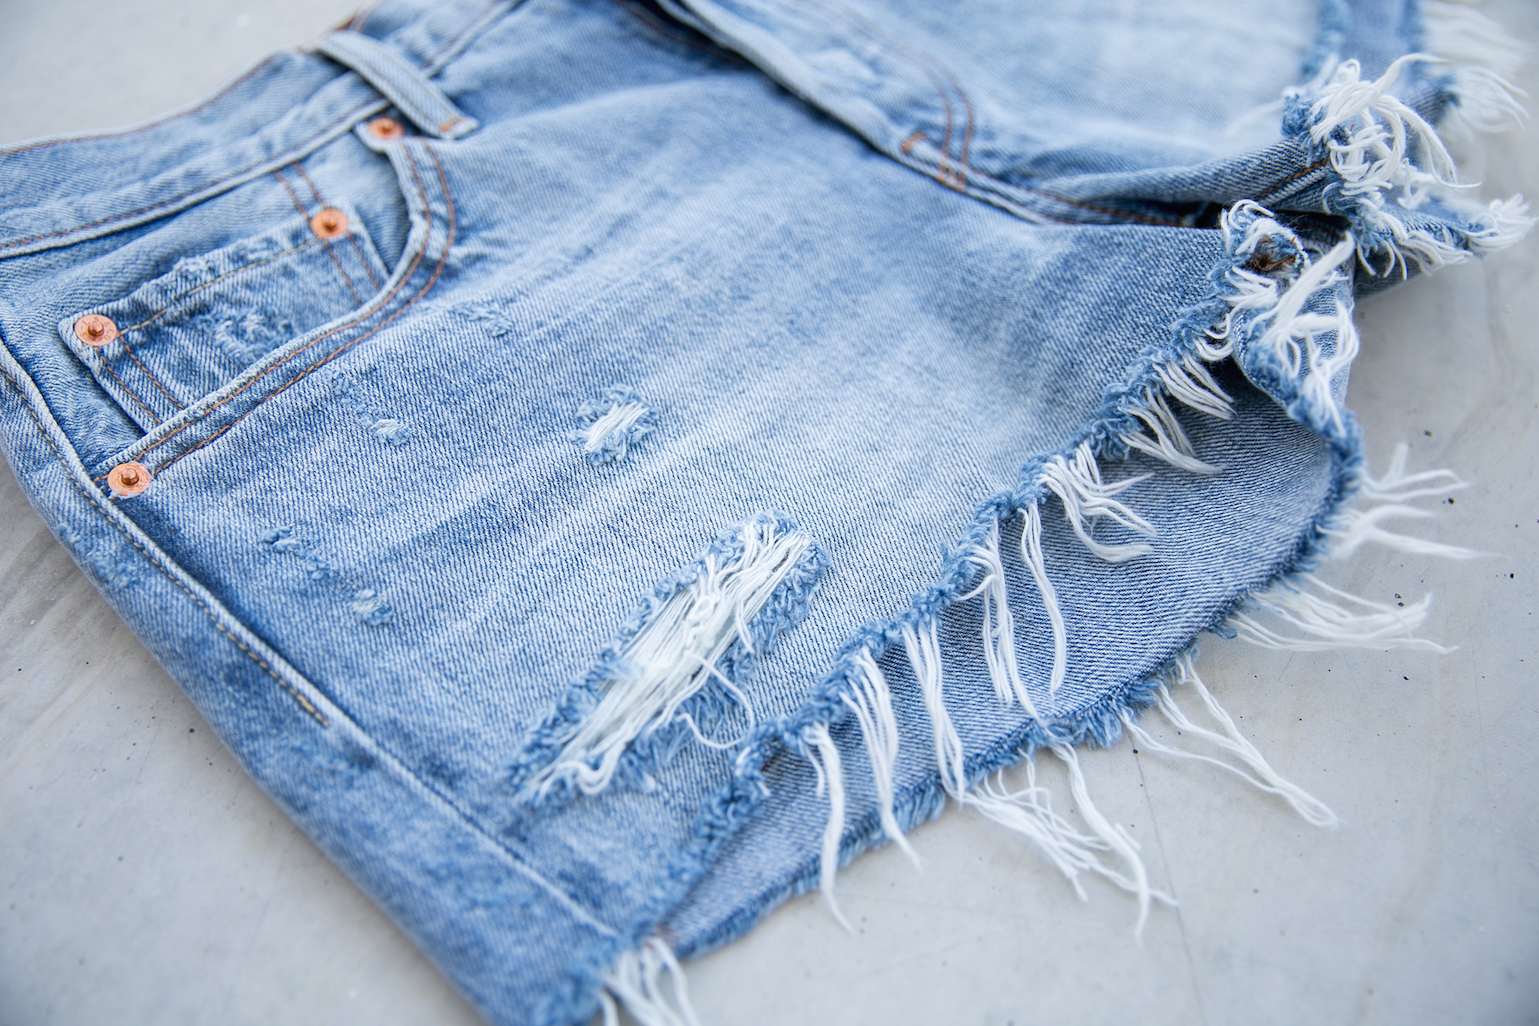 Summer Shopping mit viel Denim Mode Fashion Outfit Sommer Shorts Jeans Denim NewIn Levis LevisStrauss Rock Skirt Minirock Cardigan